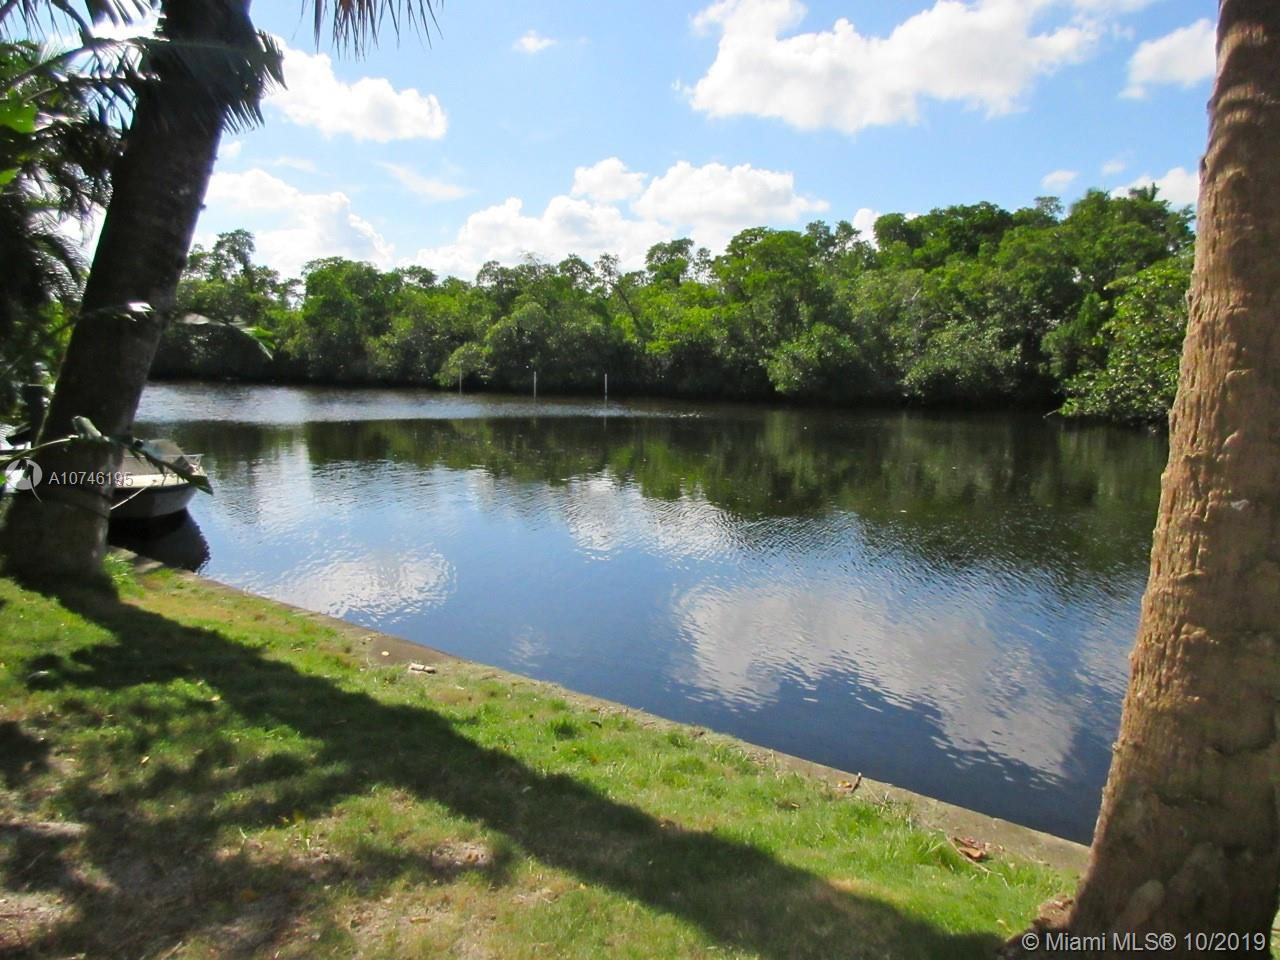 Investor, Cash Only. Spectacular Waterfront Location! Endless Possibilities! This South Fork of the Middle River Estates property sports a huge lot! 12,014 sqft! Just over a quarter acre, with over 110 feet of water frontage. Zoned RML-25, one could build a multi-unit, luxury property for sales or rentals. A 200 foot height restriction, means townhomes, or higher, are in order. Bordering Wilton Manors & Ft. Lauderdale, this location puts you in the sweet spot, as it is close to absolutely everything! The existing 3/2 single family home, is showing its age. Needs a new roof, seawall, and other major repairs. Currently there are multi-million dollar luxury townhomes being constructed, next door. INVESTOR/DEVELOPER: Build a high profit, luxury, waterfront multi unit property!